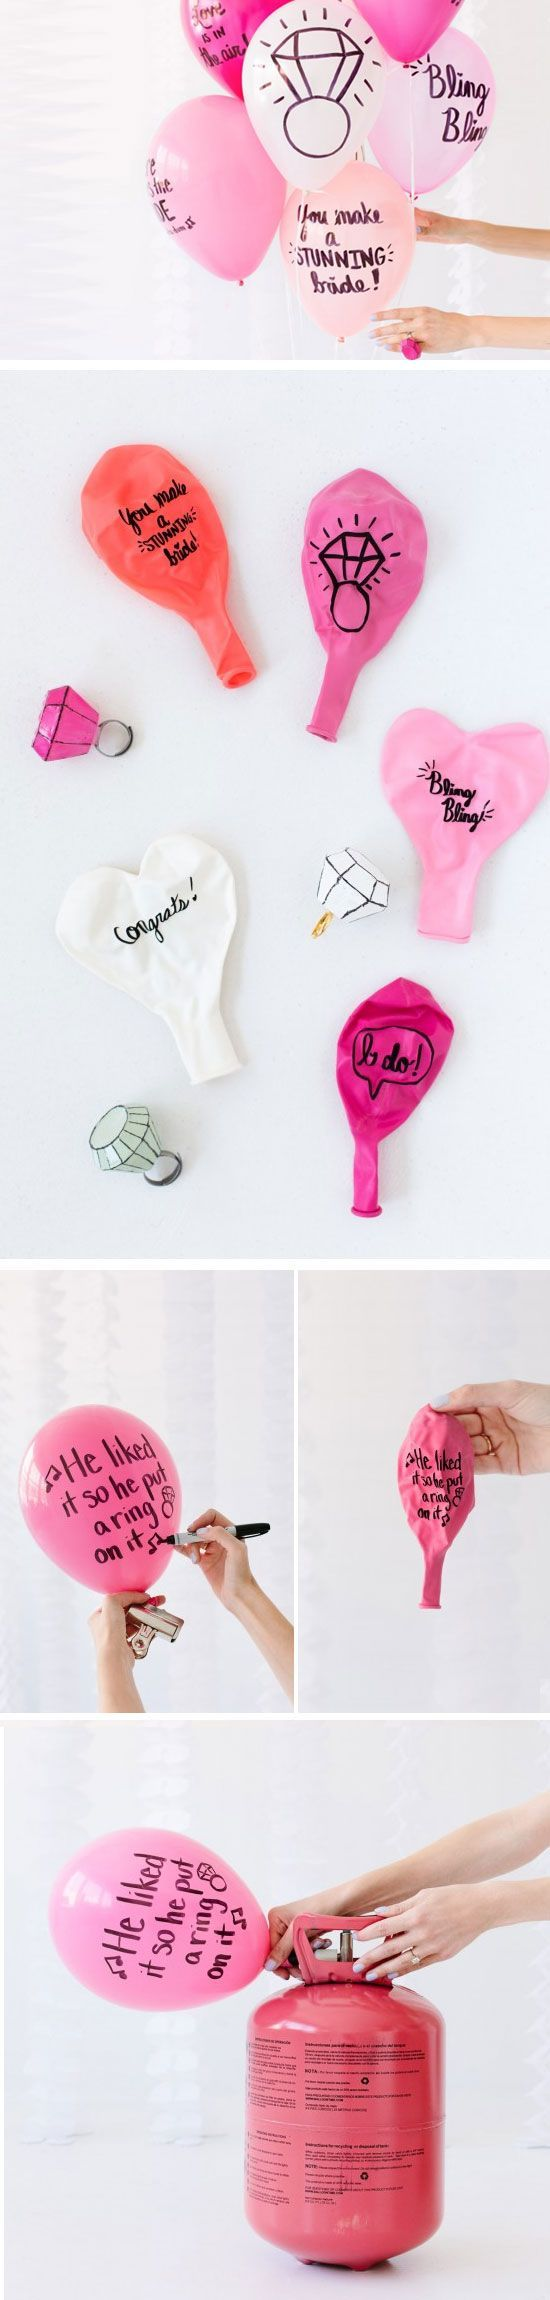 Sweet Balloon Wishes | DIY Bridal Shower Party Ideas on a Budget bridal shower